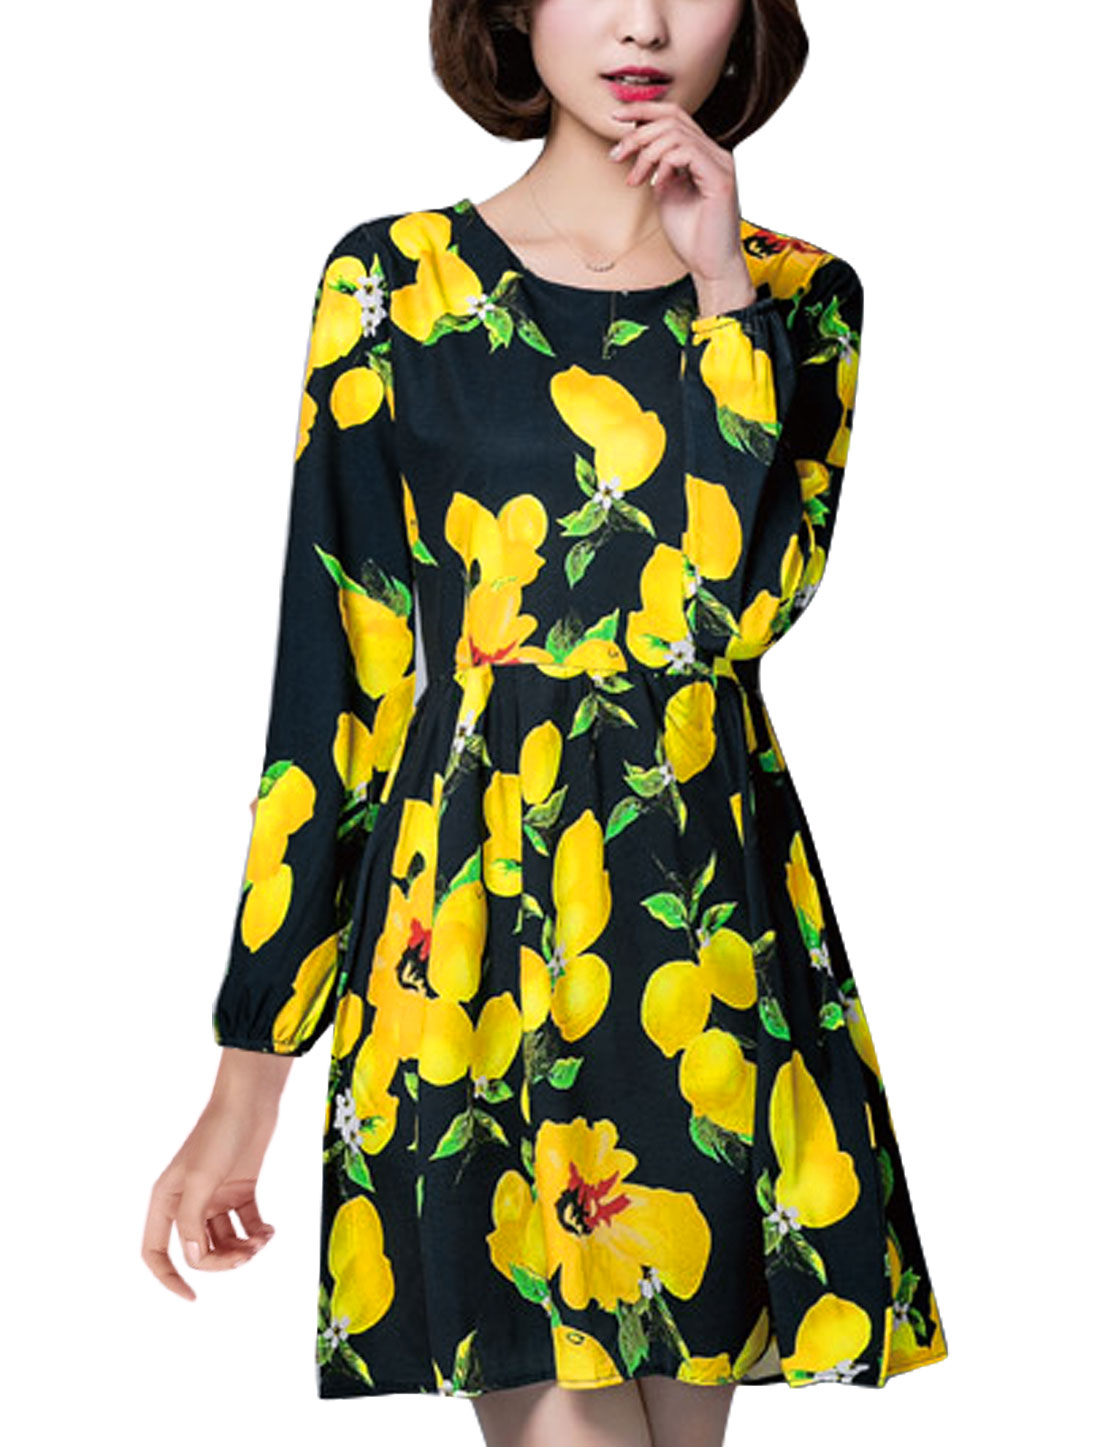 Women Lemon Prints Round Neck Long Sleeves A Line Dress Black S